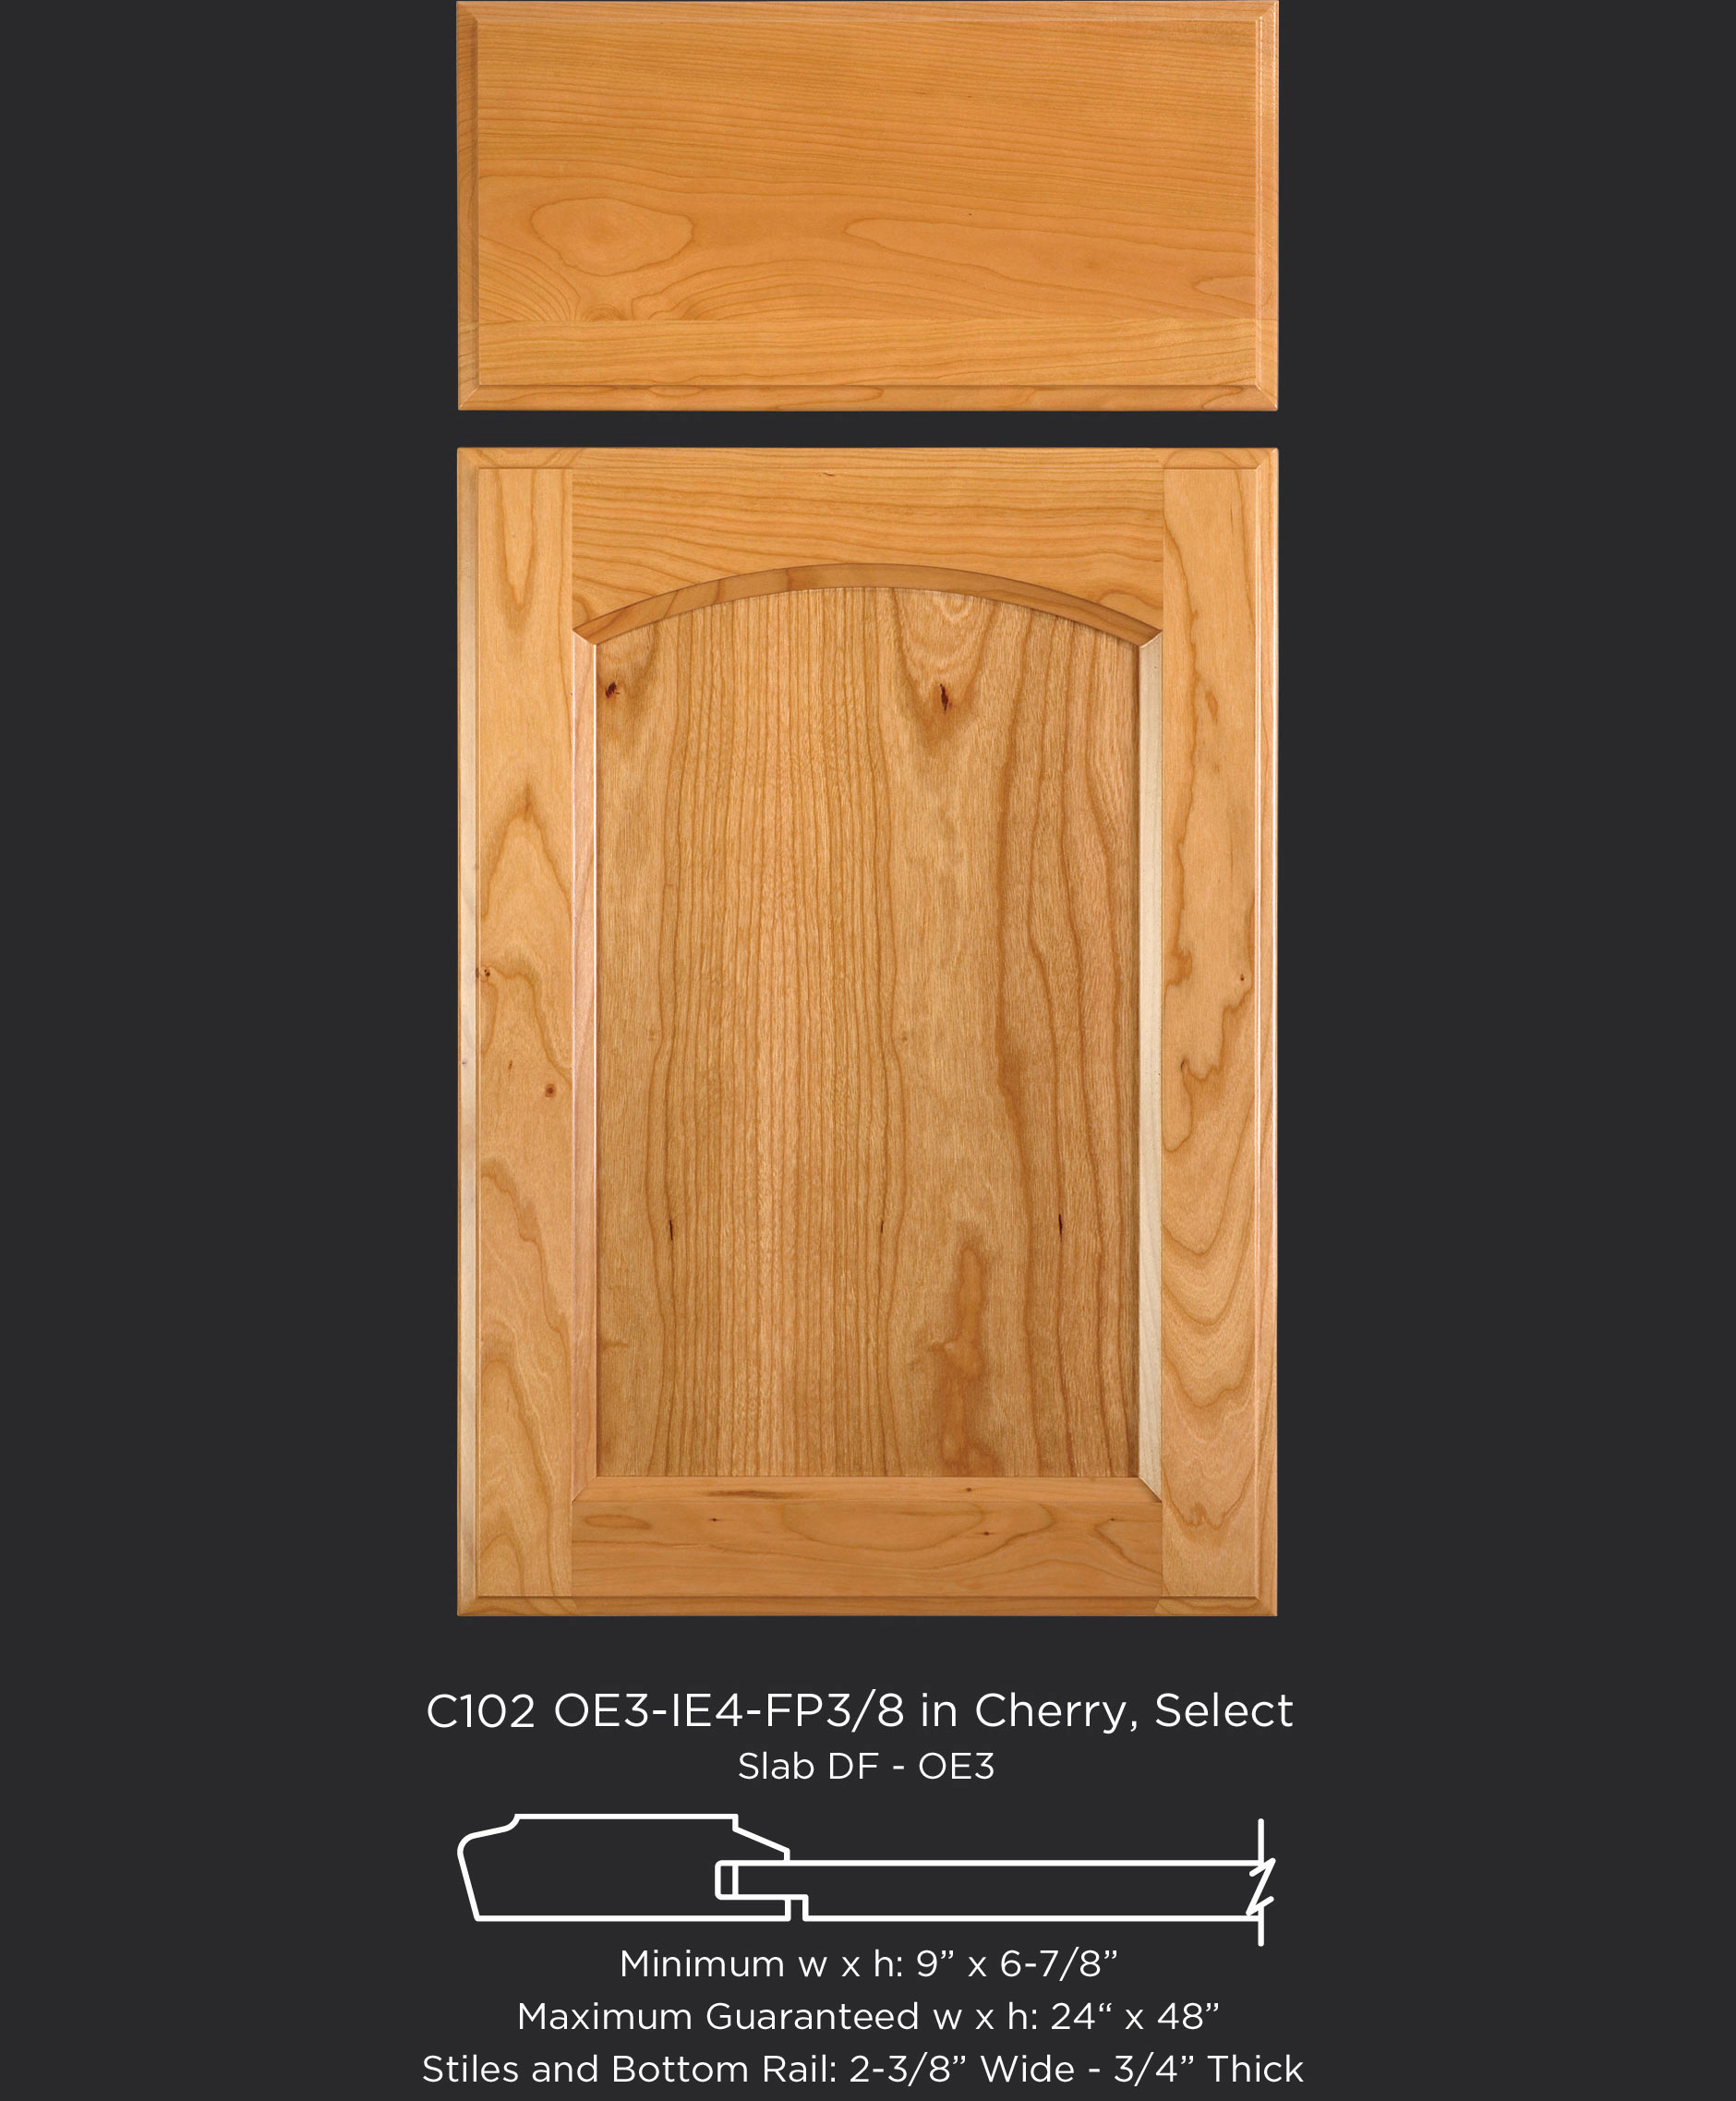 Cope and Stick Cabinet Door C102-OE3-IE4-FP3/8 in Cherry, Select and slab drawer front with OE3